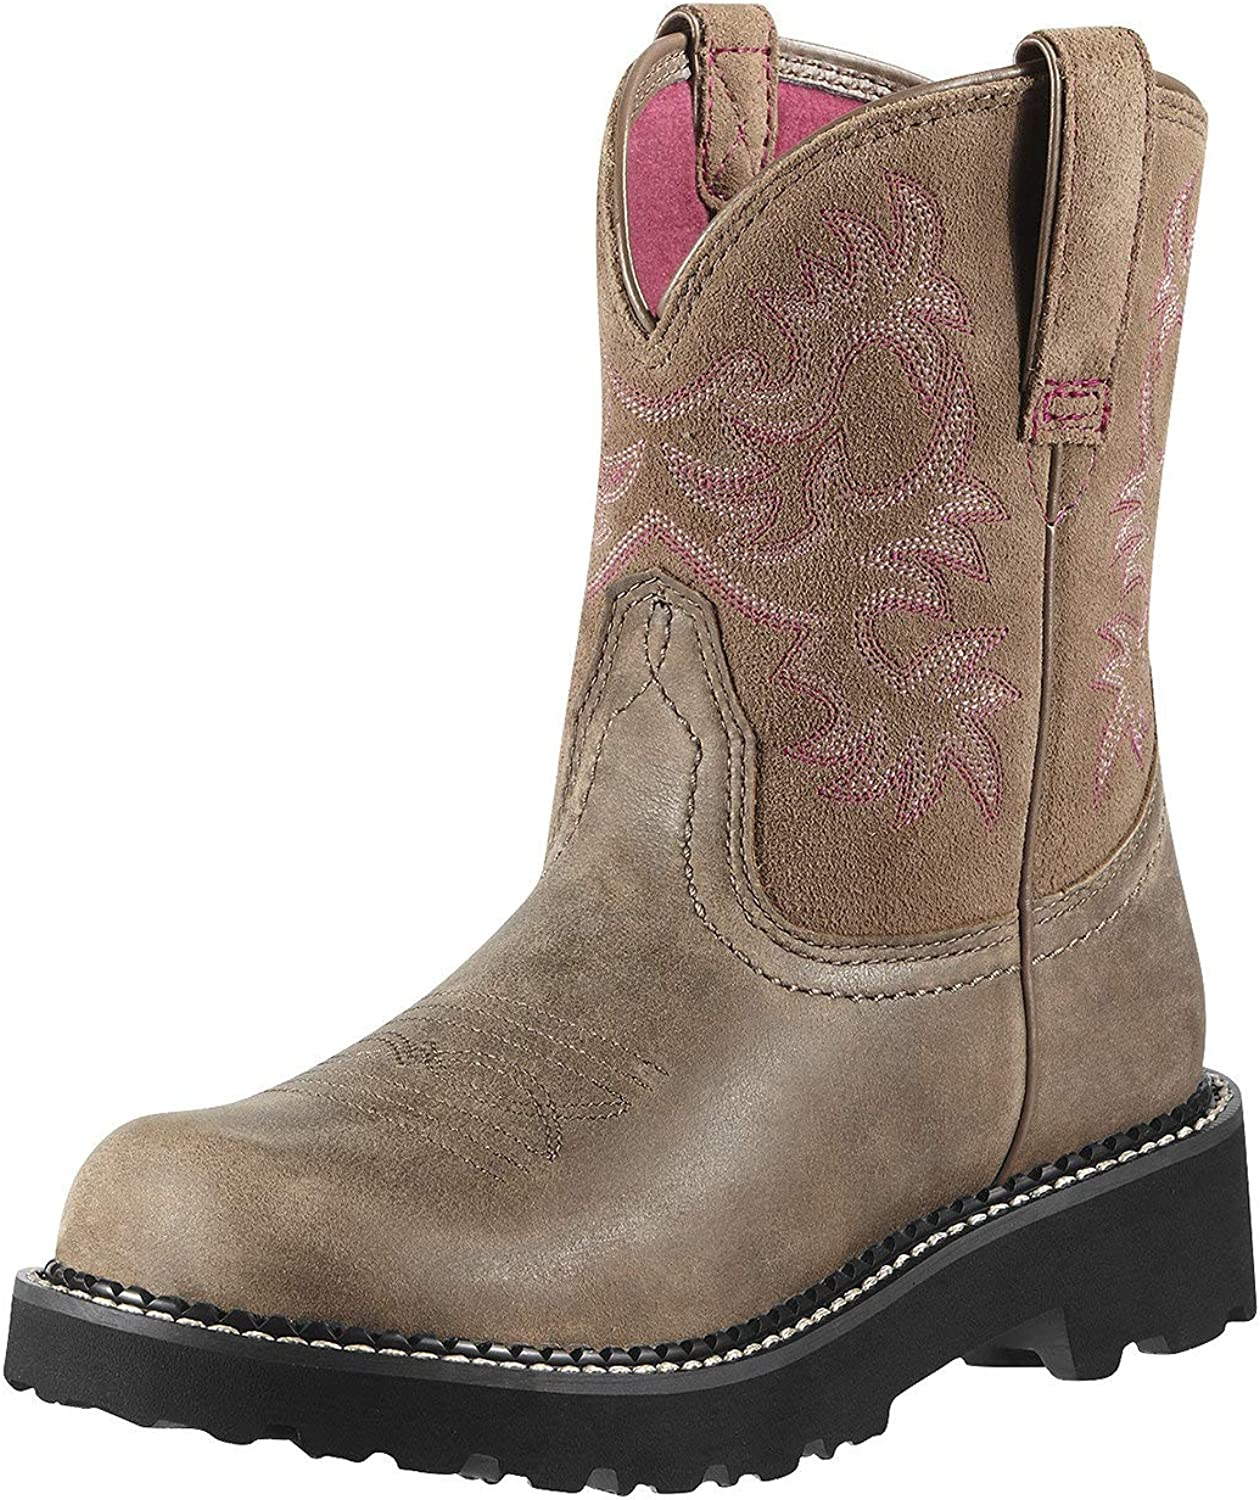 Ariat Women's Fatbaby Heritage Western Cowboy Boot